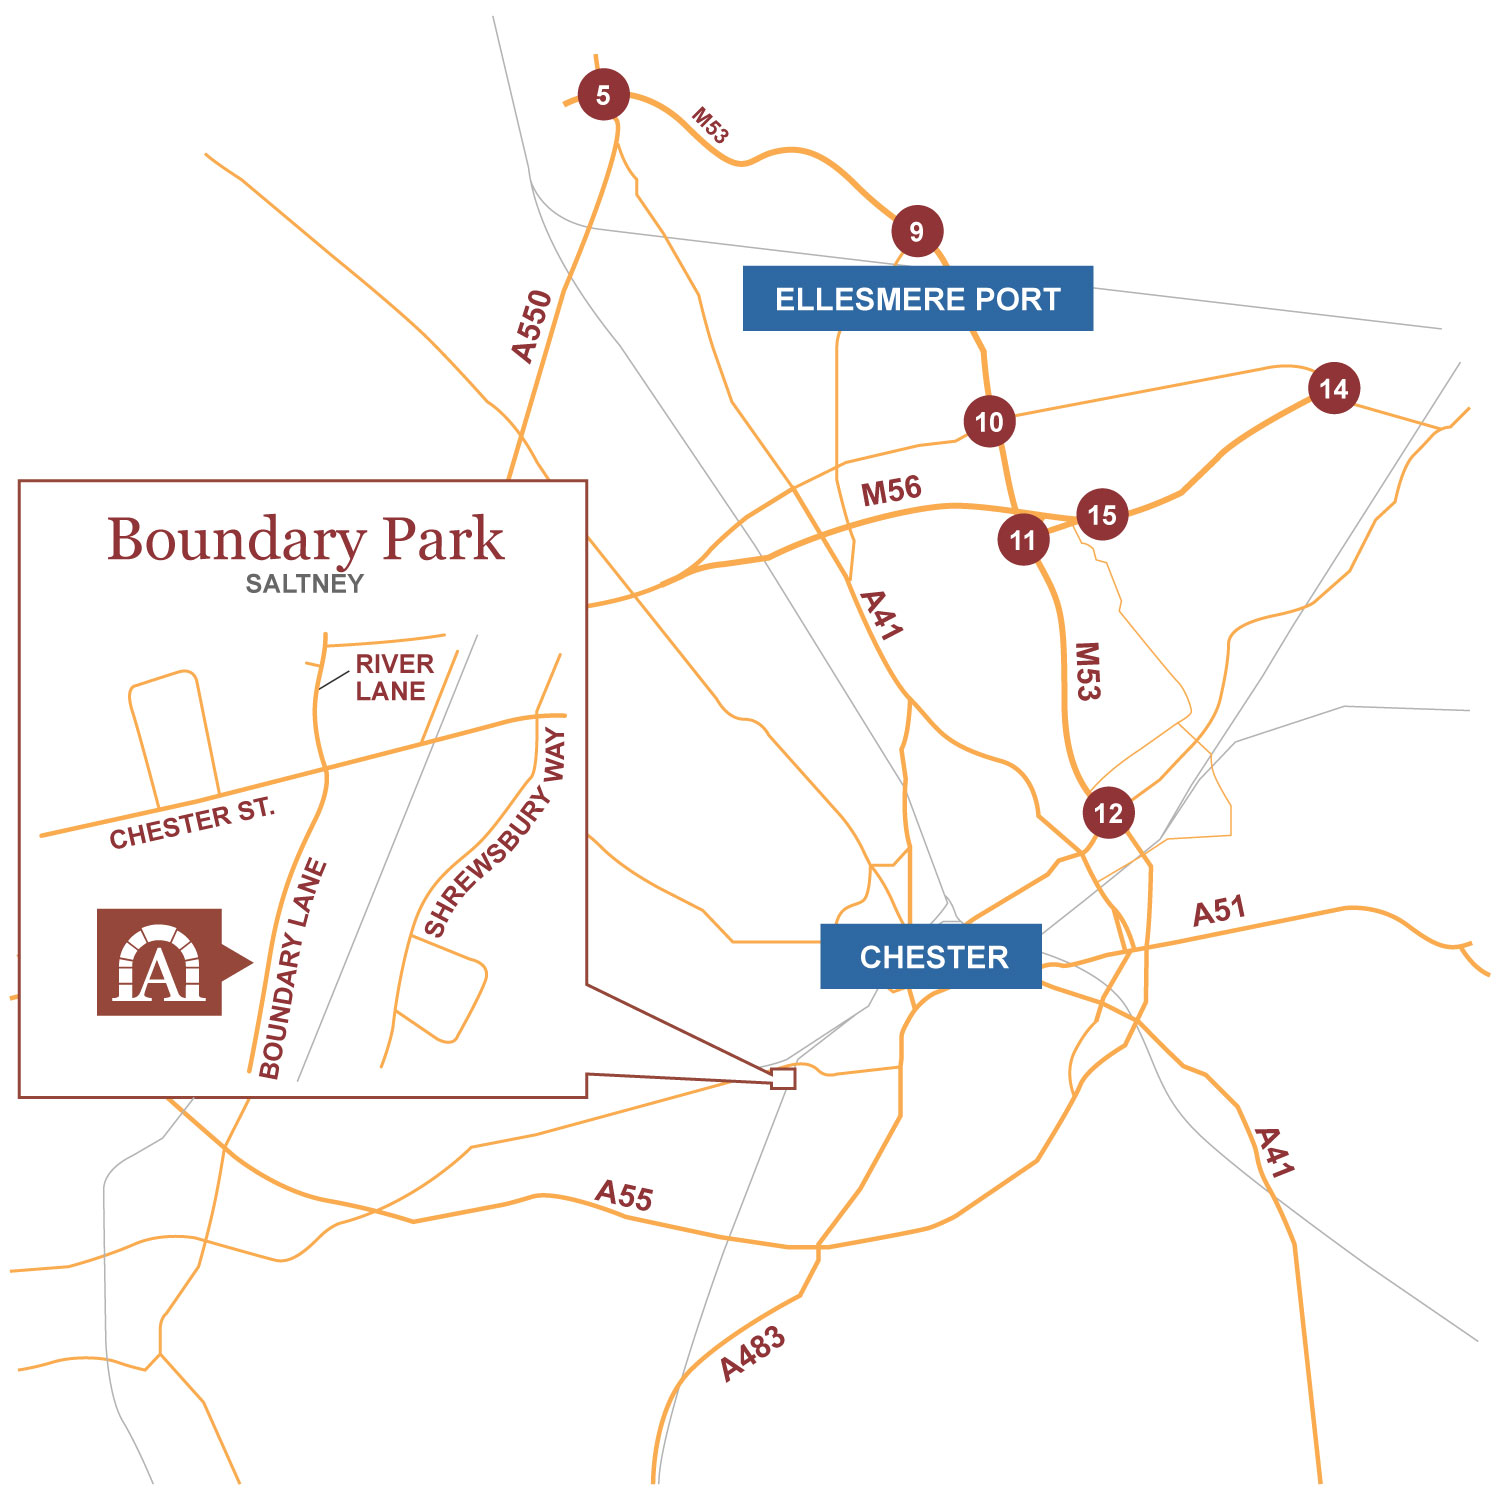 Boundary Park location map